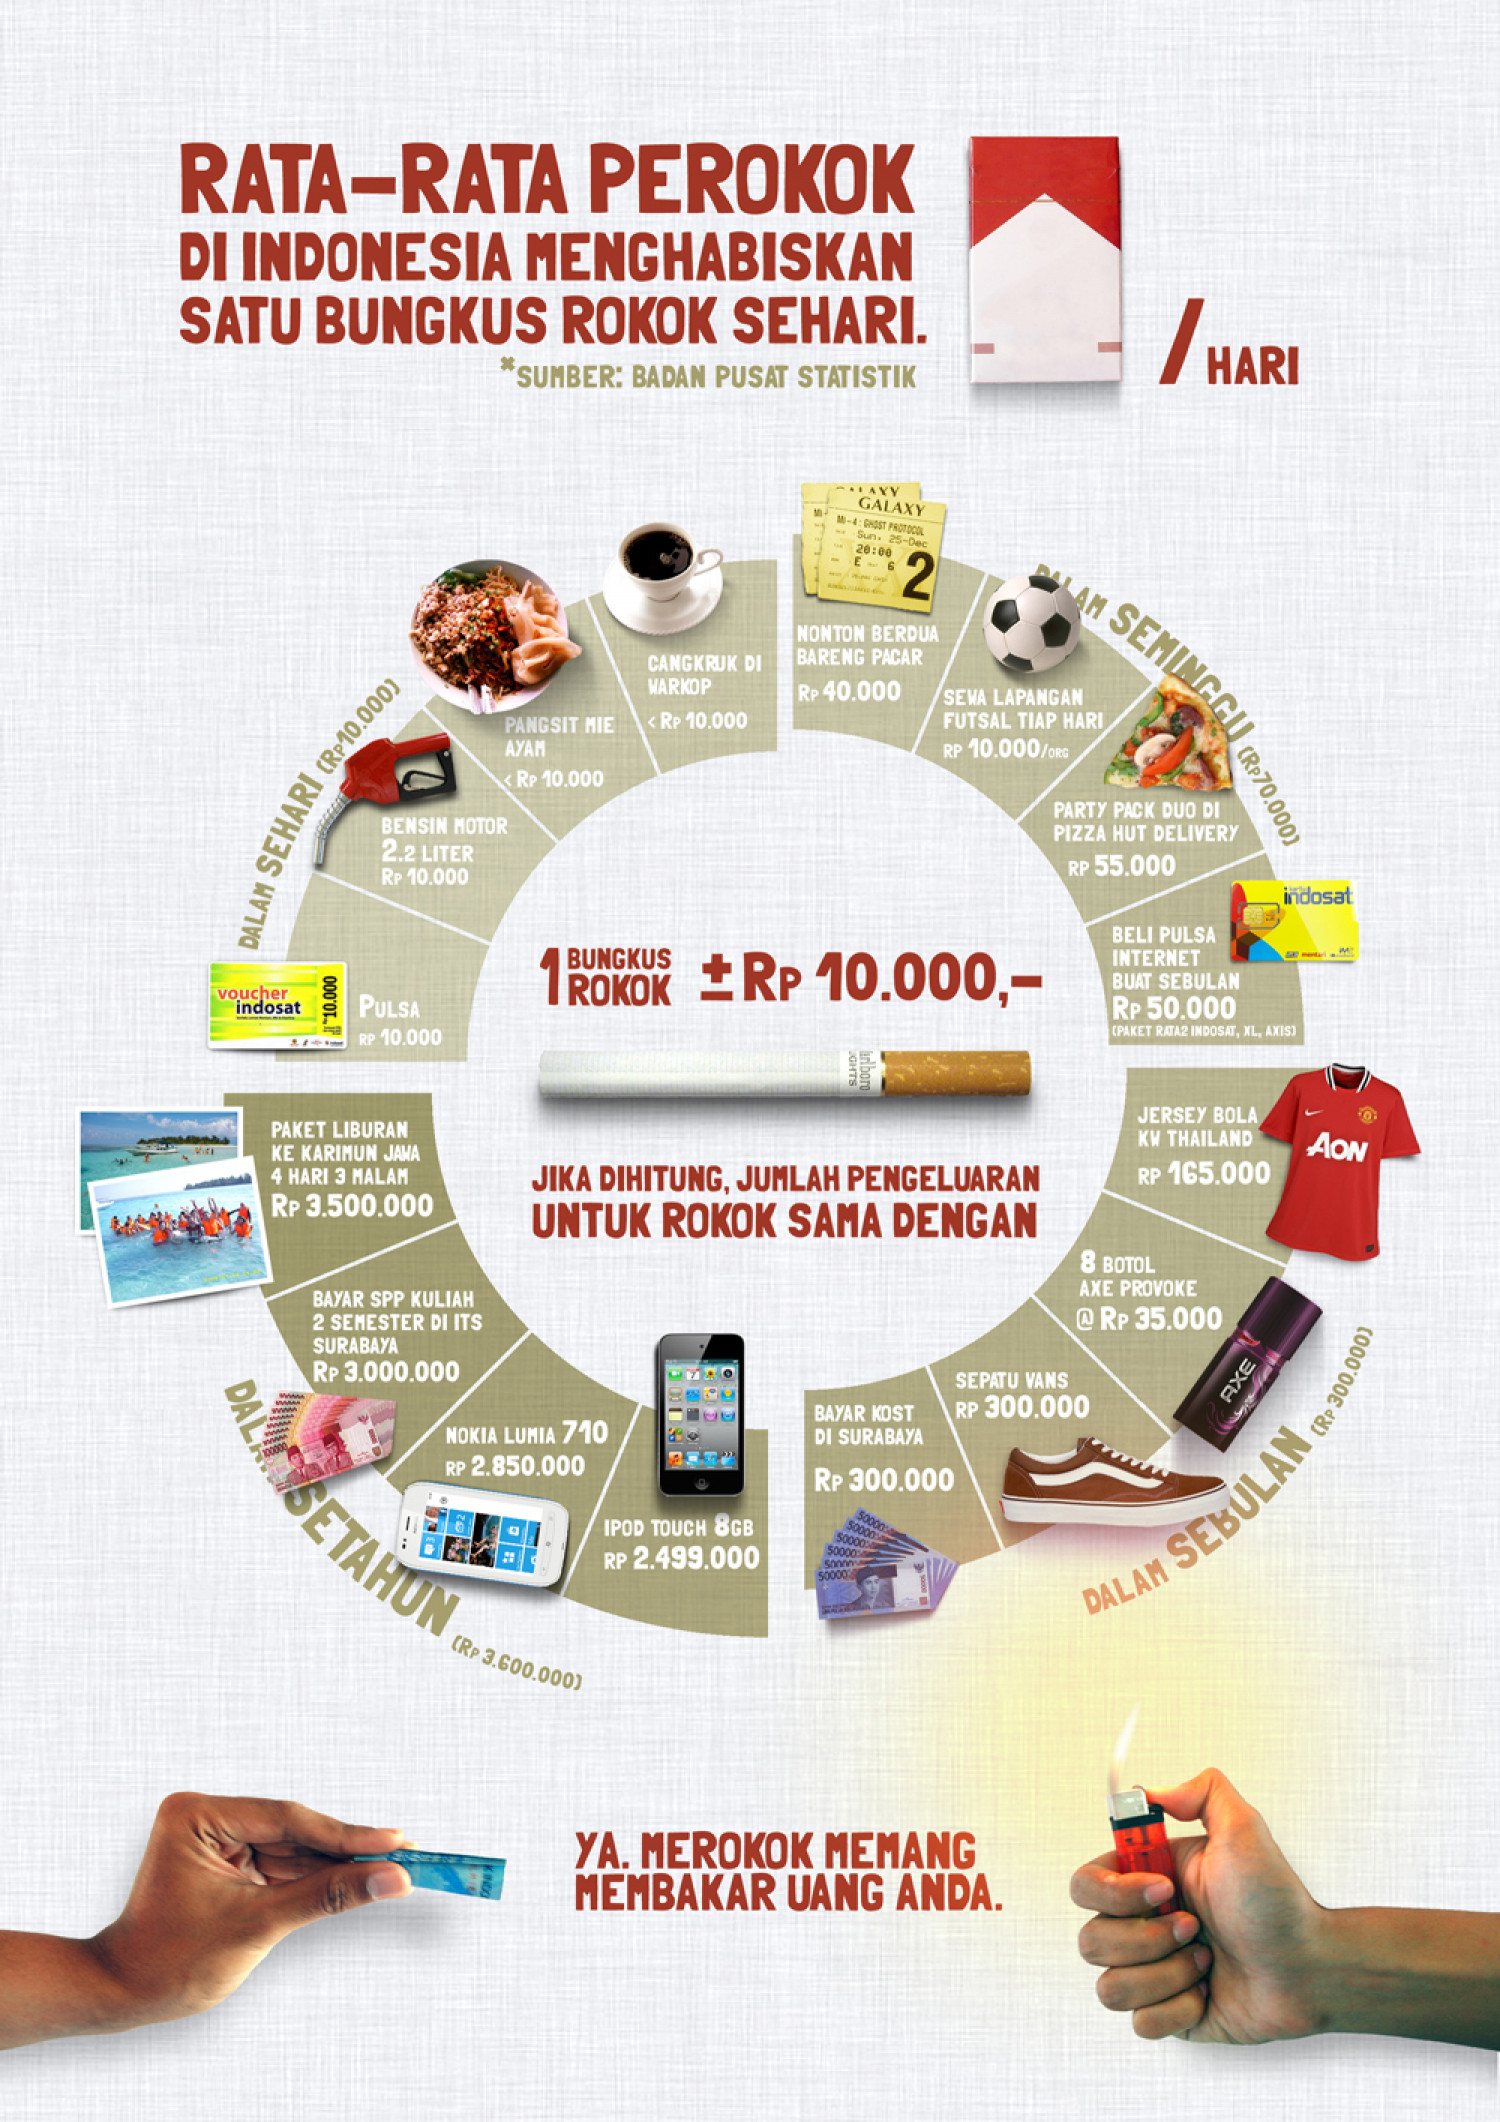 The Negative Side of Smoking, Financially Infographic